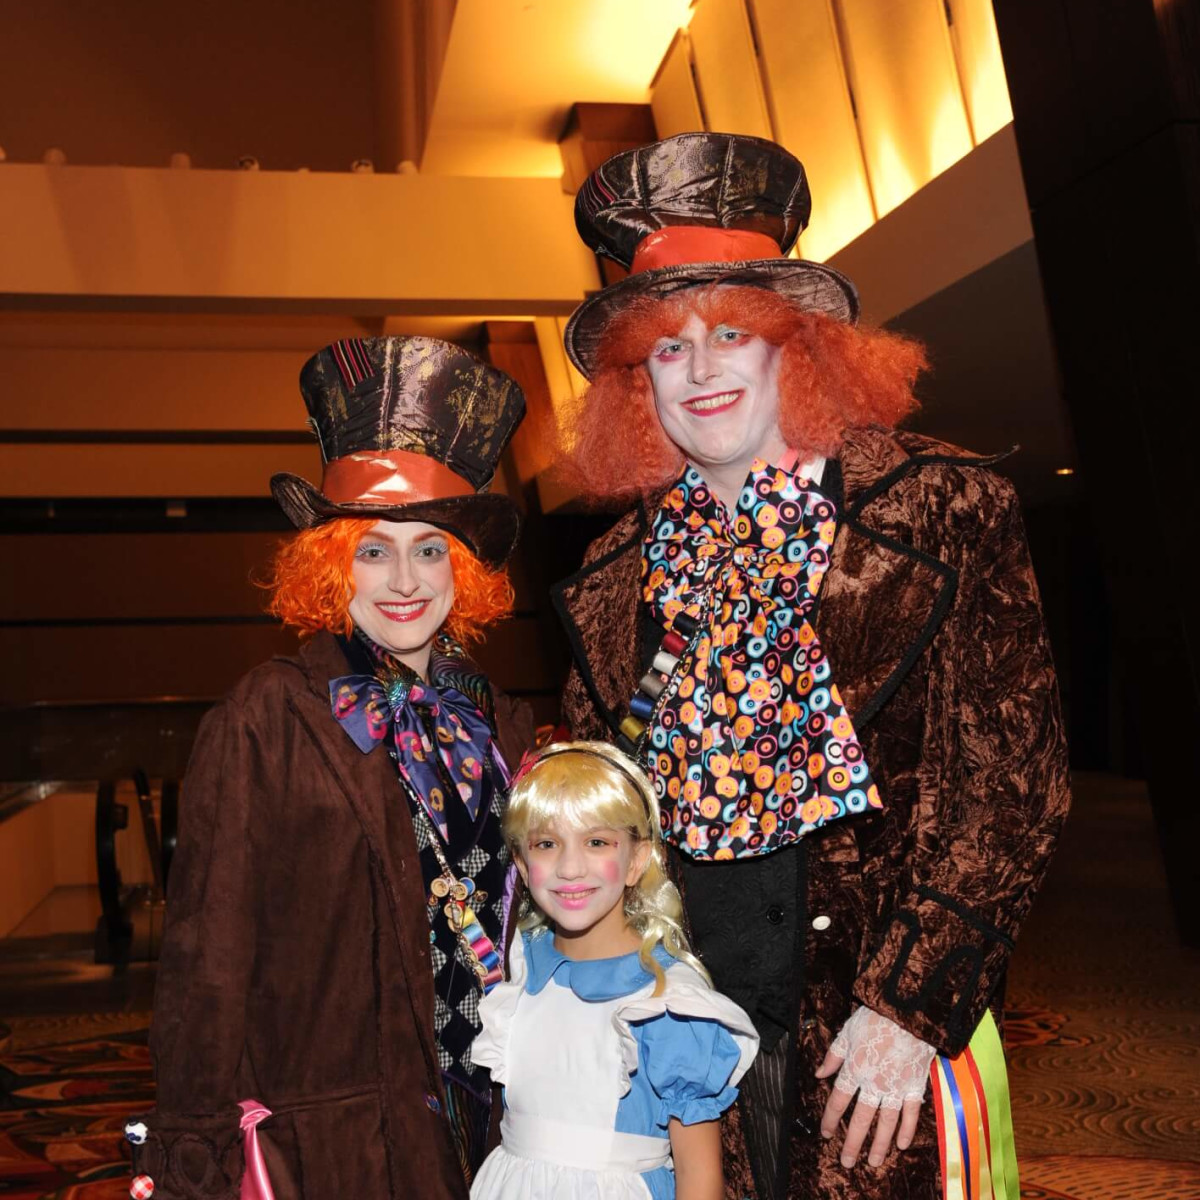 Joelle and Mitch Derrick, gala honorees, with their daughter at Boo Ball